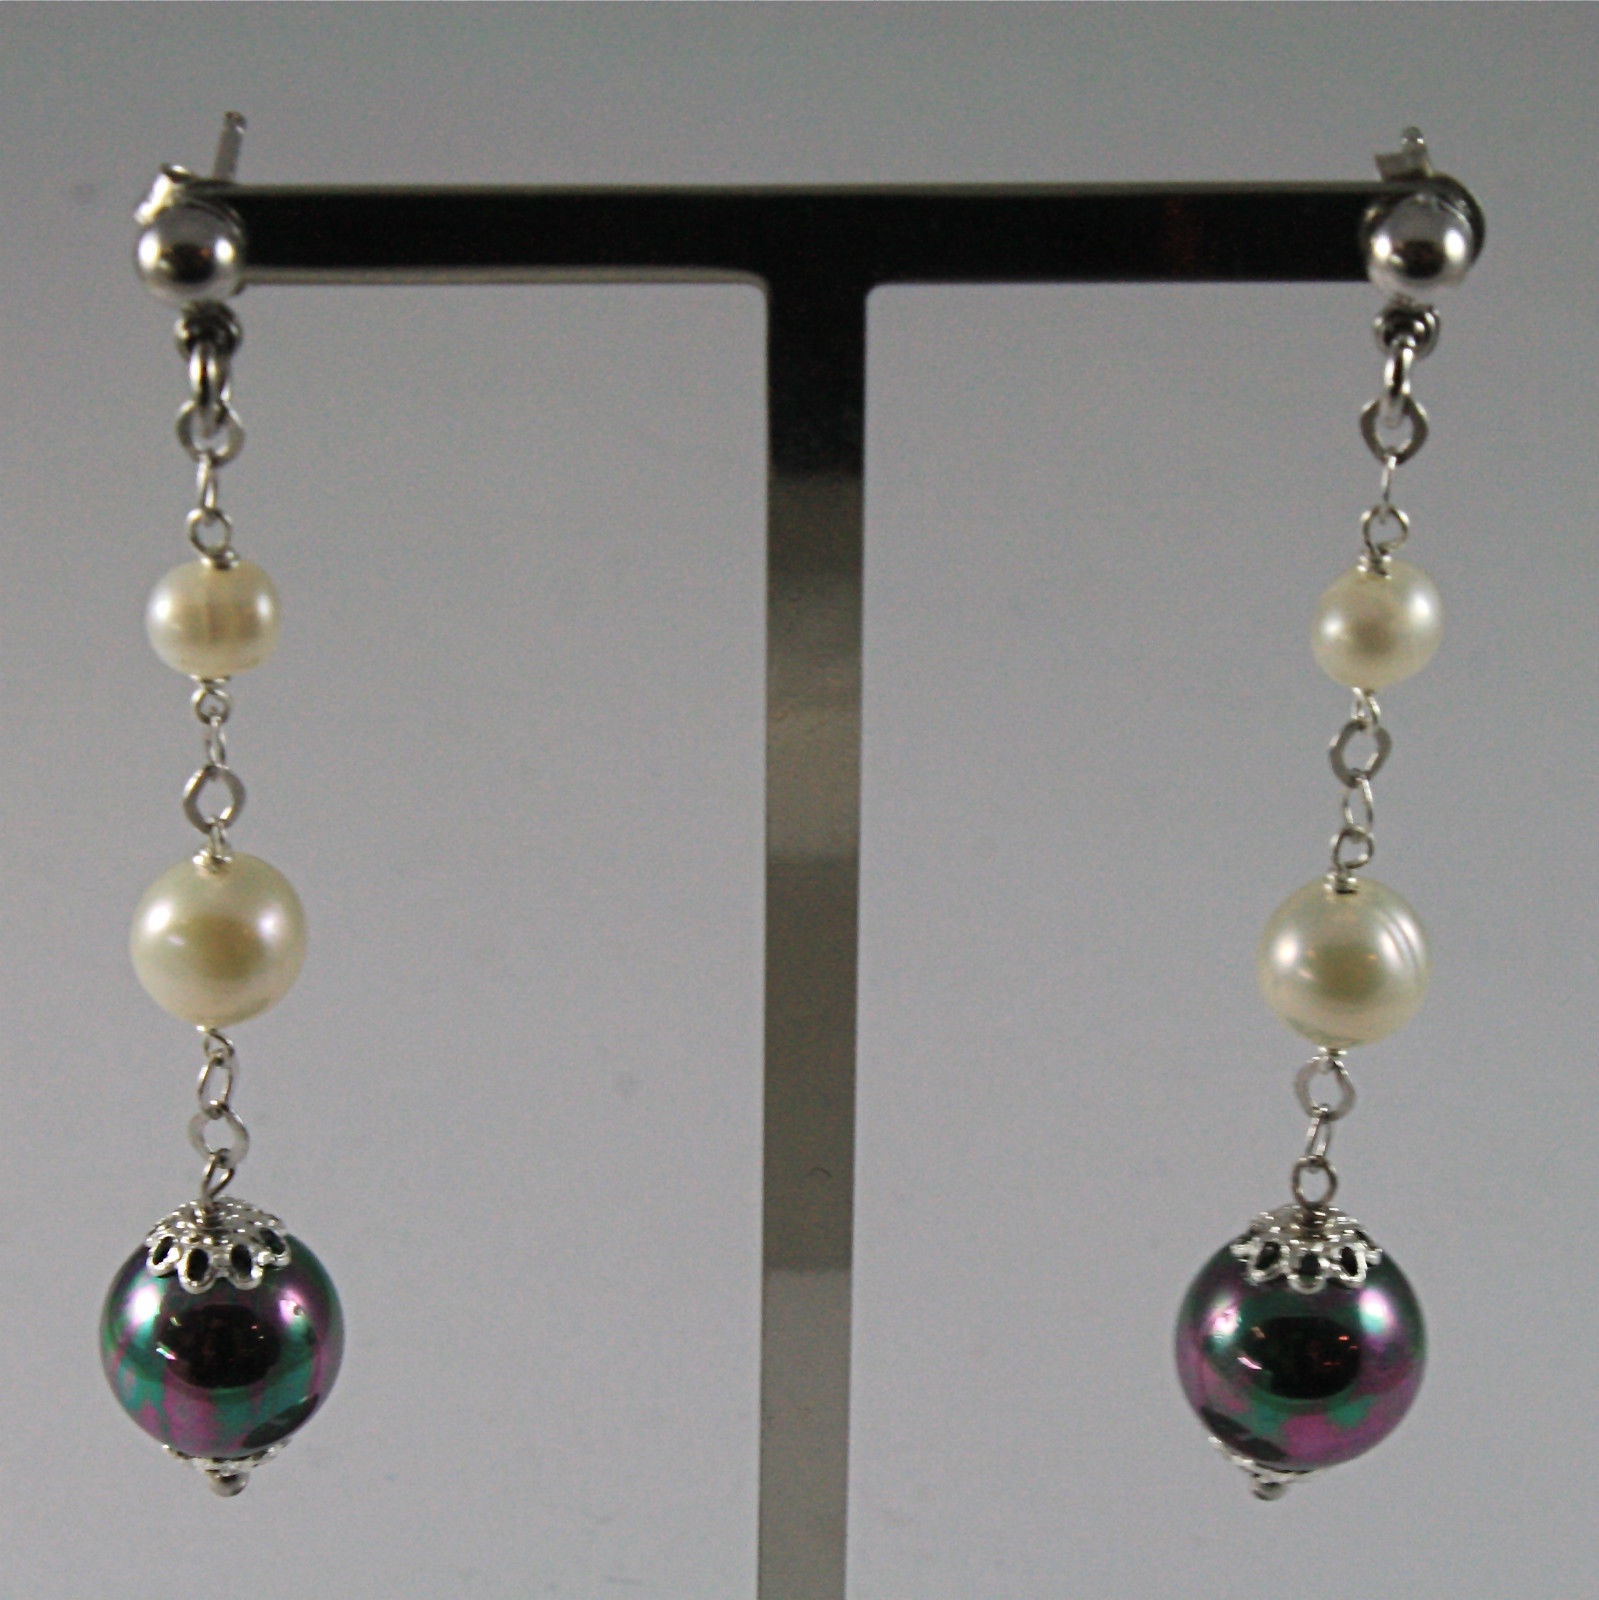 .925 RHODIUM SILVER EARRINGS WITH 4 AND 6 MM FRESHWATER PEARLS 2.28 IN LENGHT